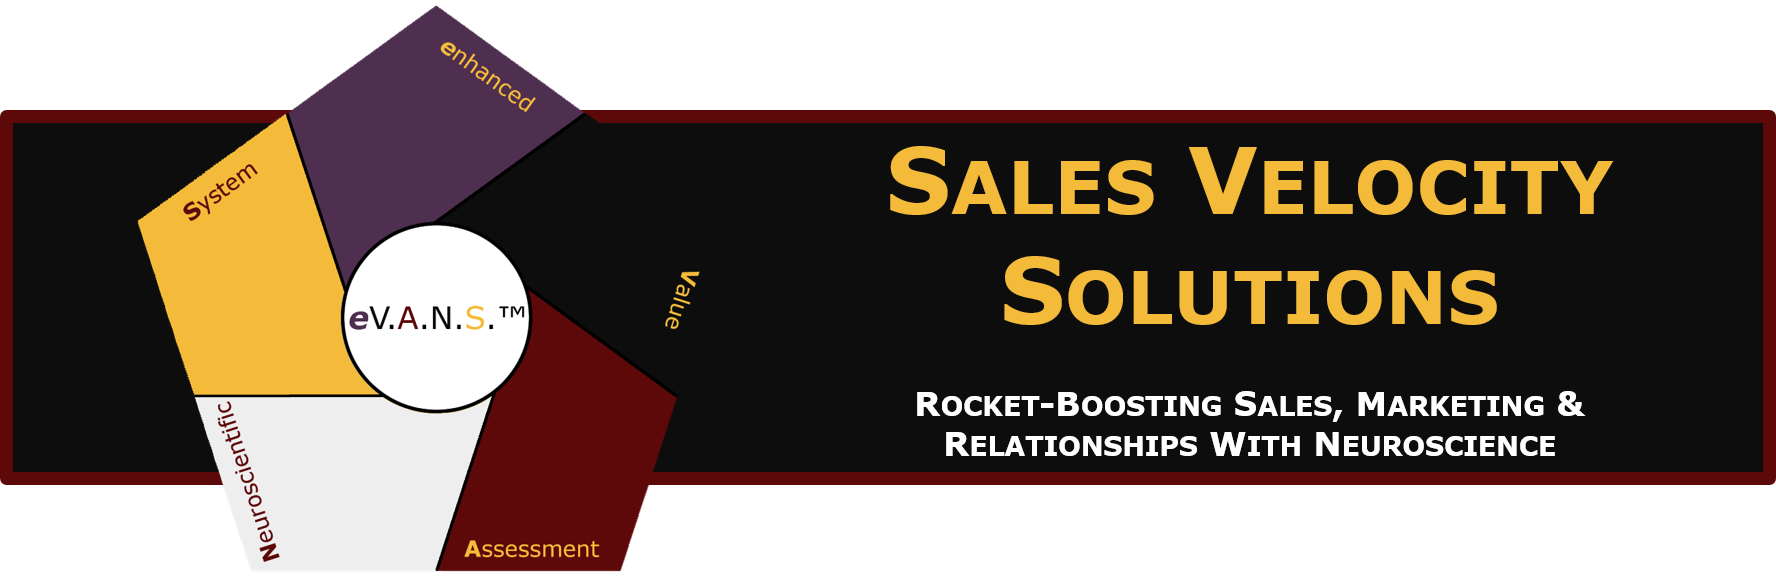 Sales Velocity Solutions